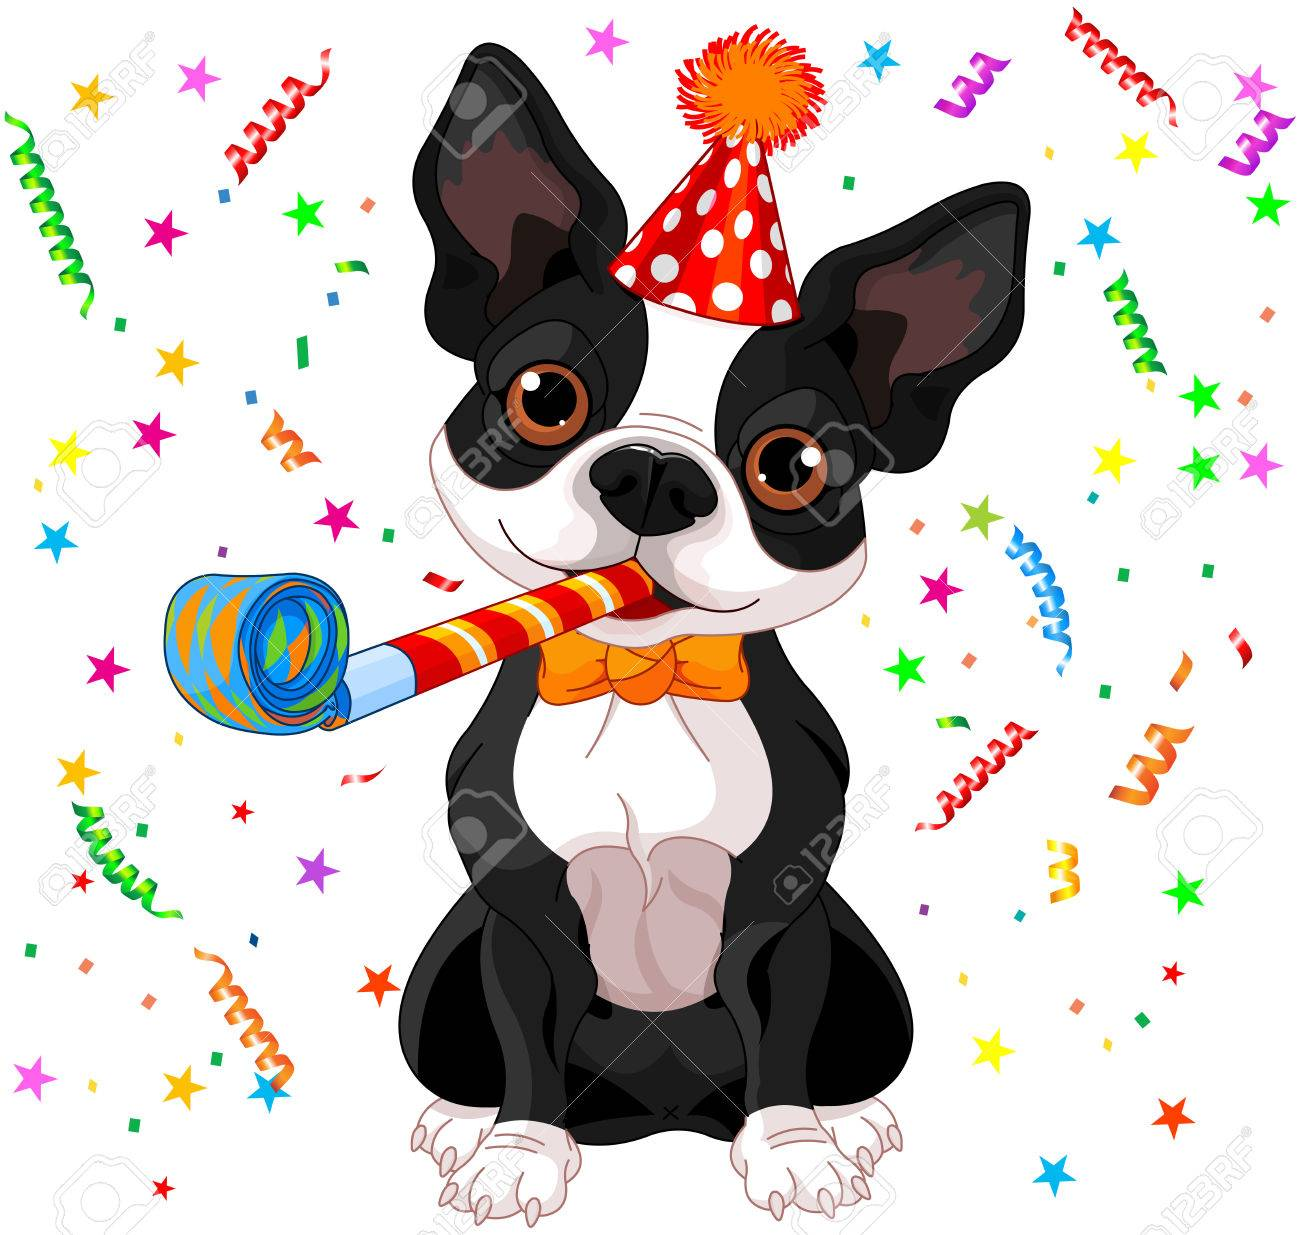 A la recherche de la laisse parfaite - Page 9 35588778-illustration-of-cute-boston-terrier-celebrating